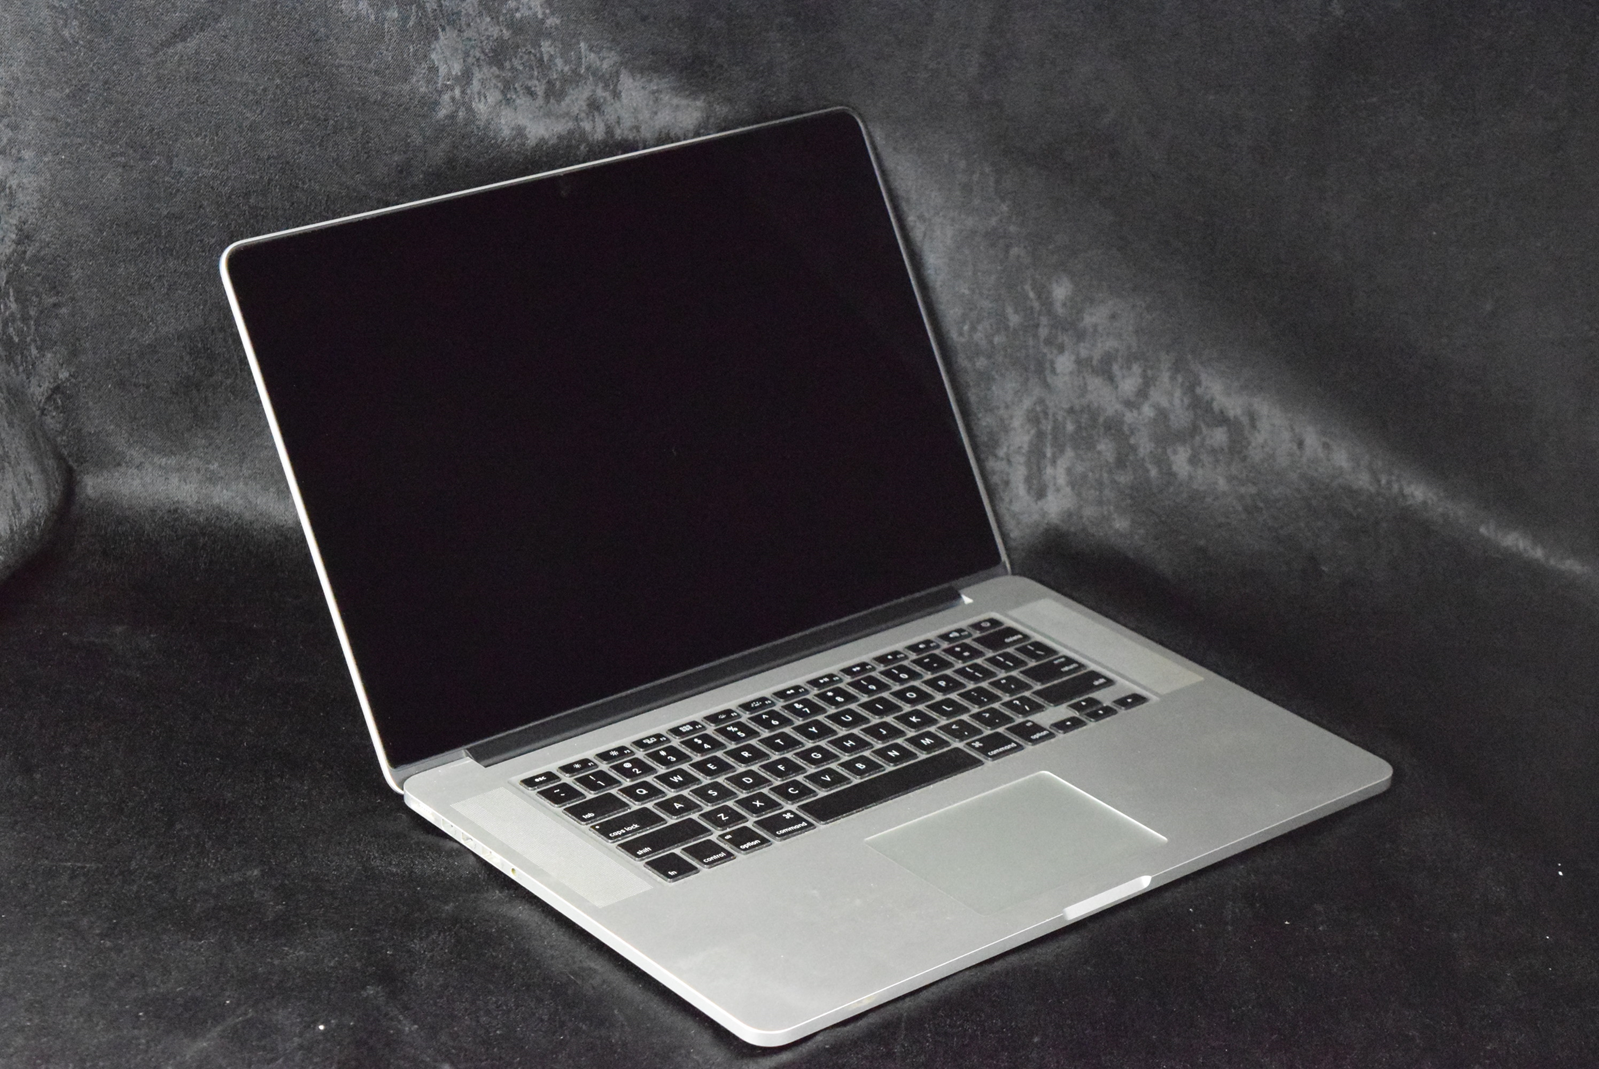 apple macbook pro retina i core ghz quad core gb apple macbook pro 10 1 retina i7 core 2 7ghz quad core 16gb 256gb ssd apple macbook pro 10 1 retina i7 core 2 7ghz quad core 16gb 256gb ssd 27128 1